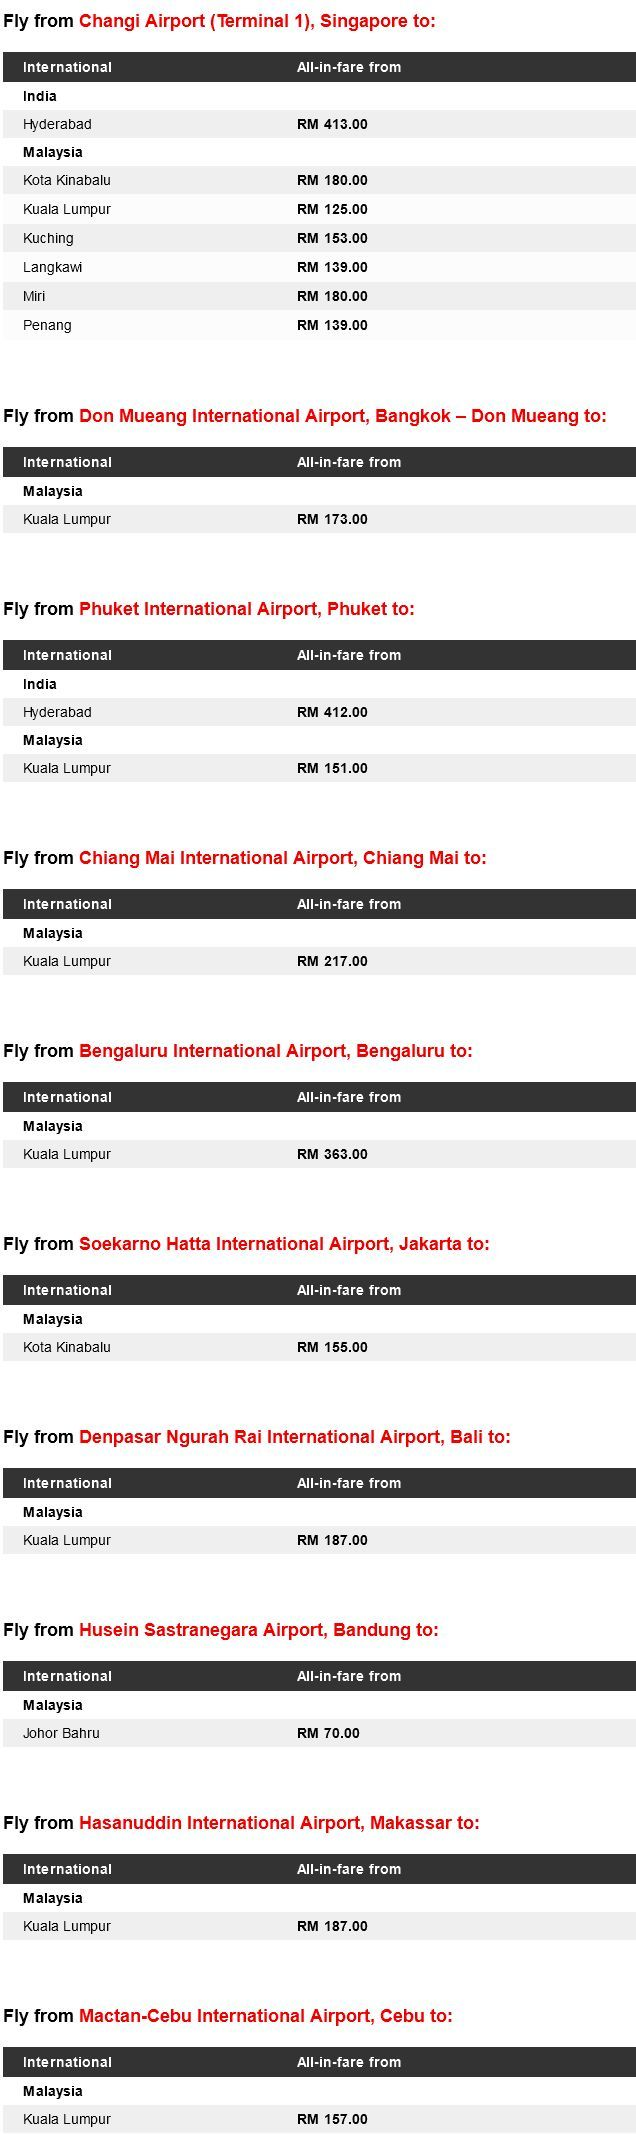 AirAsia New Year Promotion Fares Details